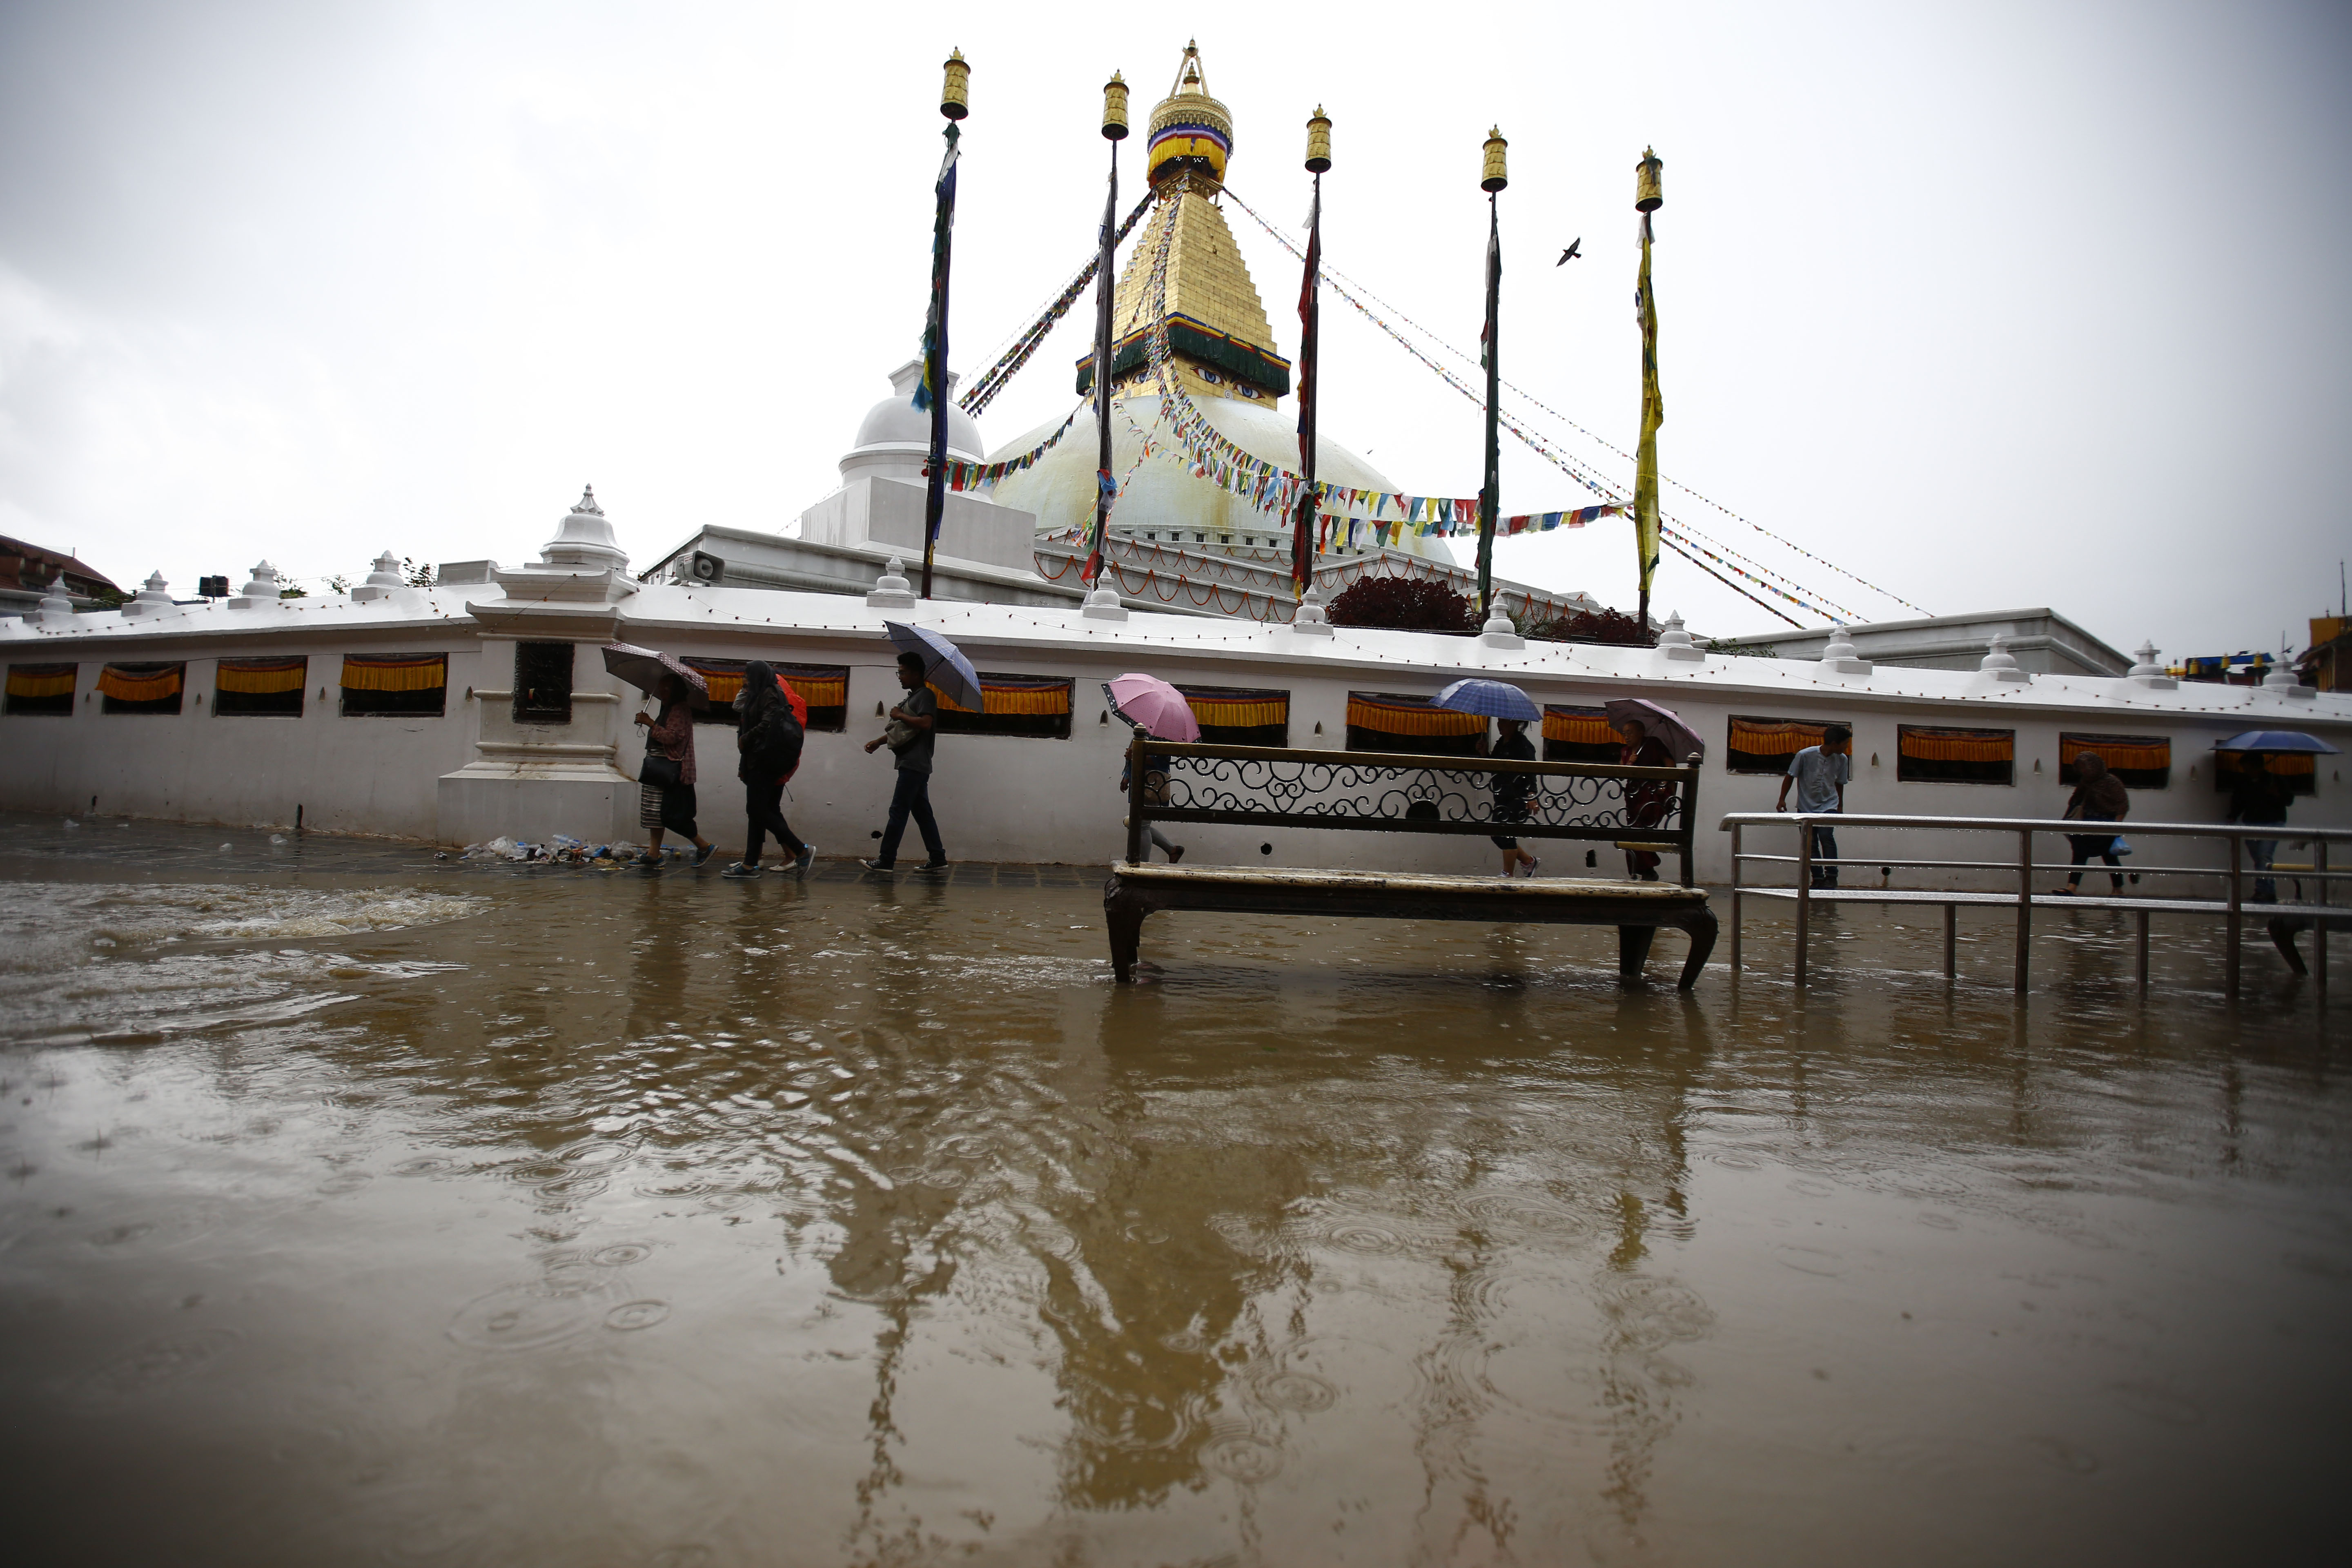 People struggling to walk around the inundated Boudhanath Stupa, a UNESCO World Heritage site, as captured on Sunday, July 23, 2017. During monsoon the area is inundated due to poor drainage system in the tourist hub. Photo: Skanda Gautam